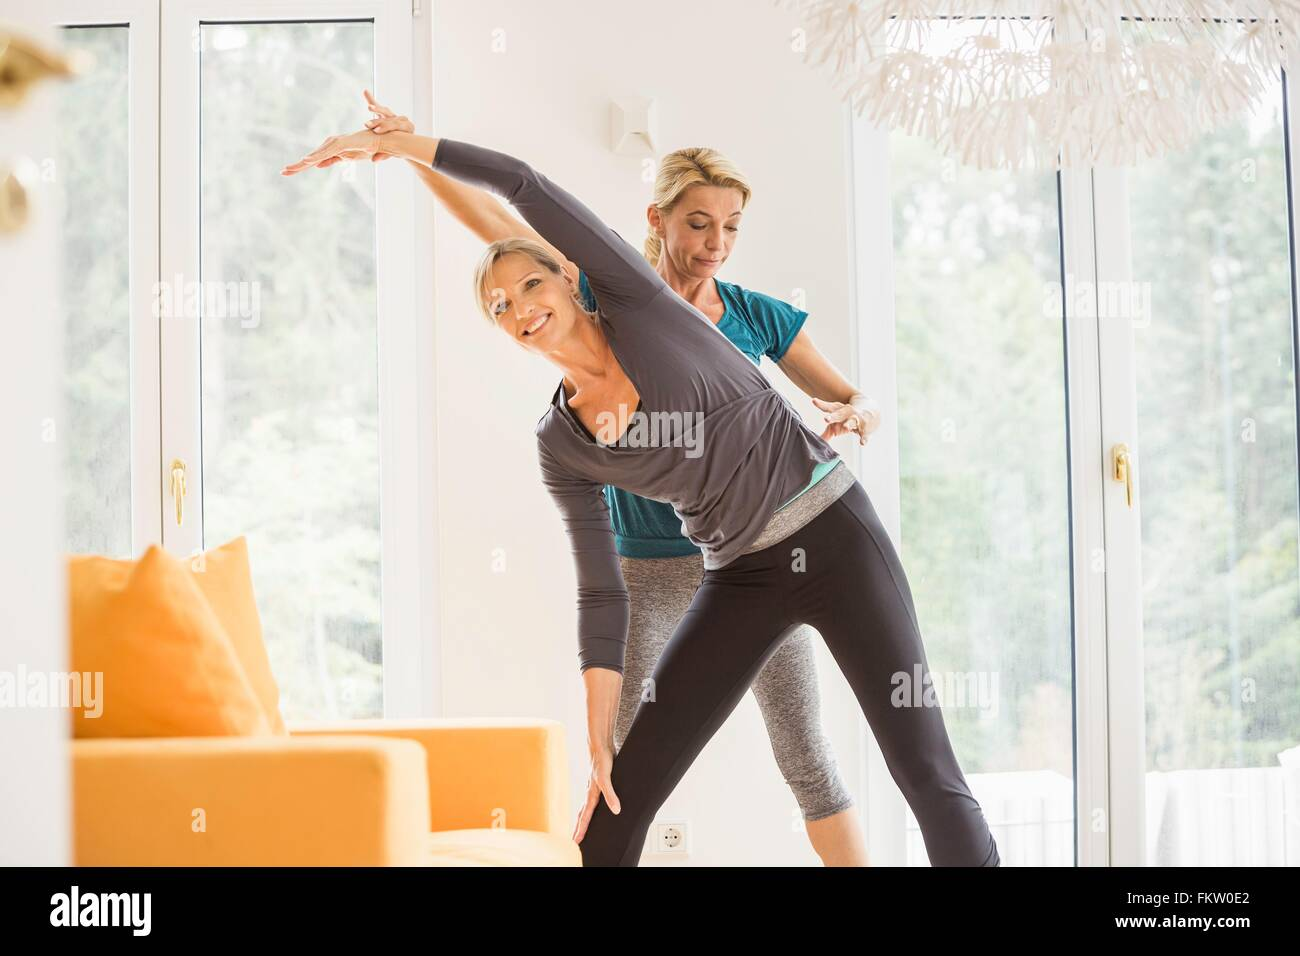 Mature woman and personal trainer exercising in living room - Stock Image